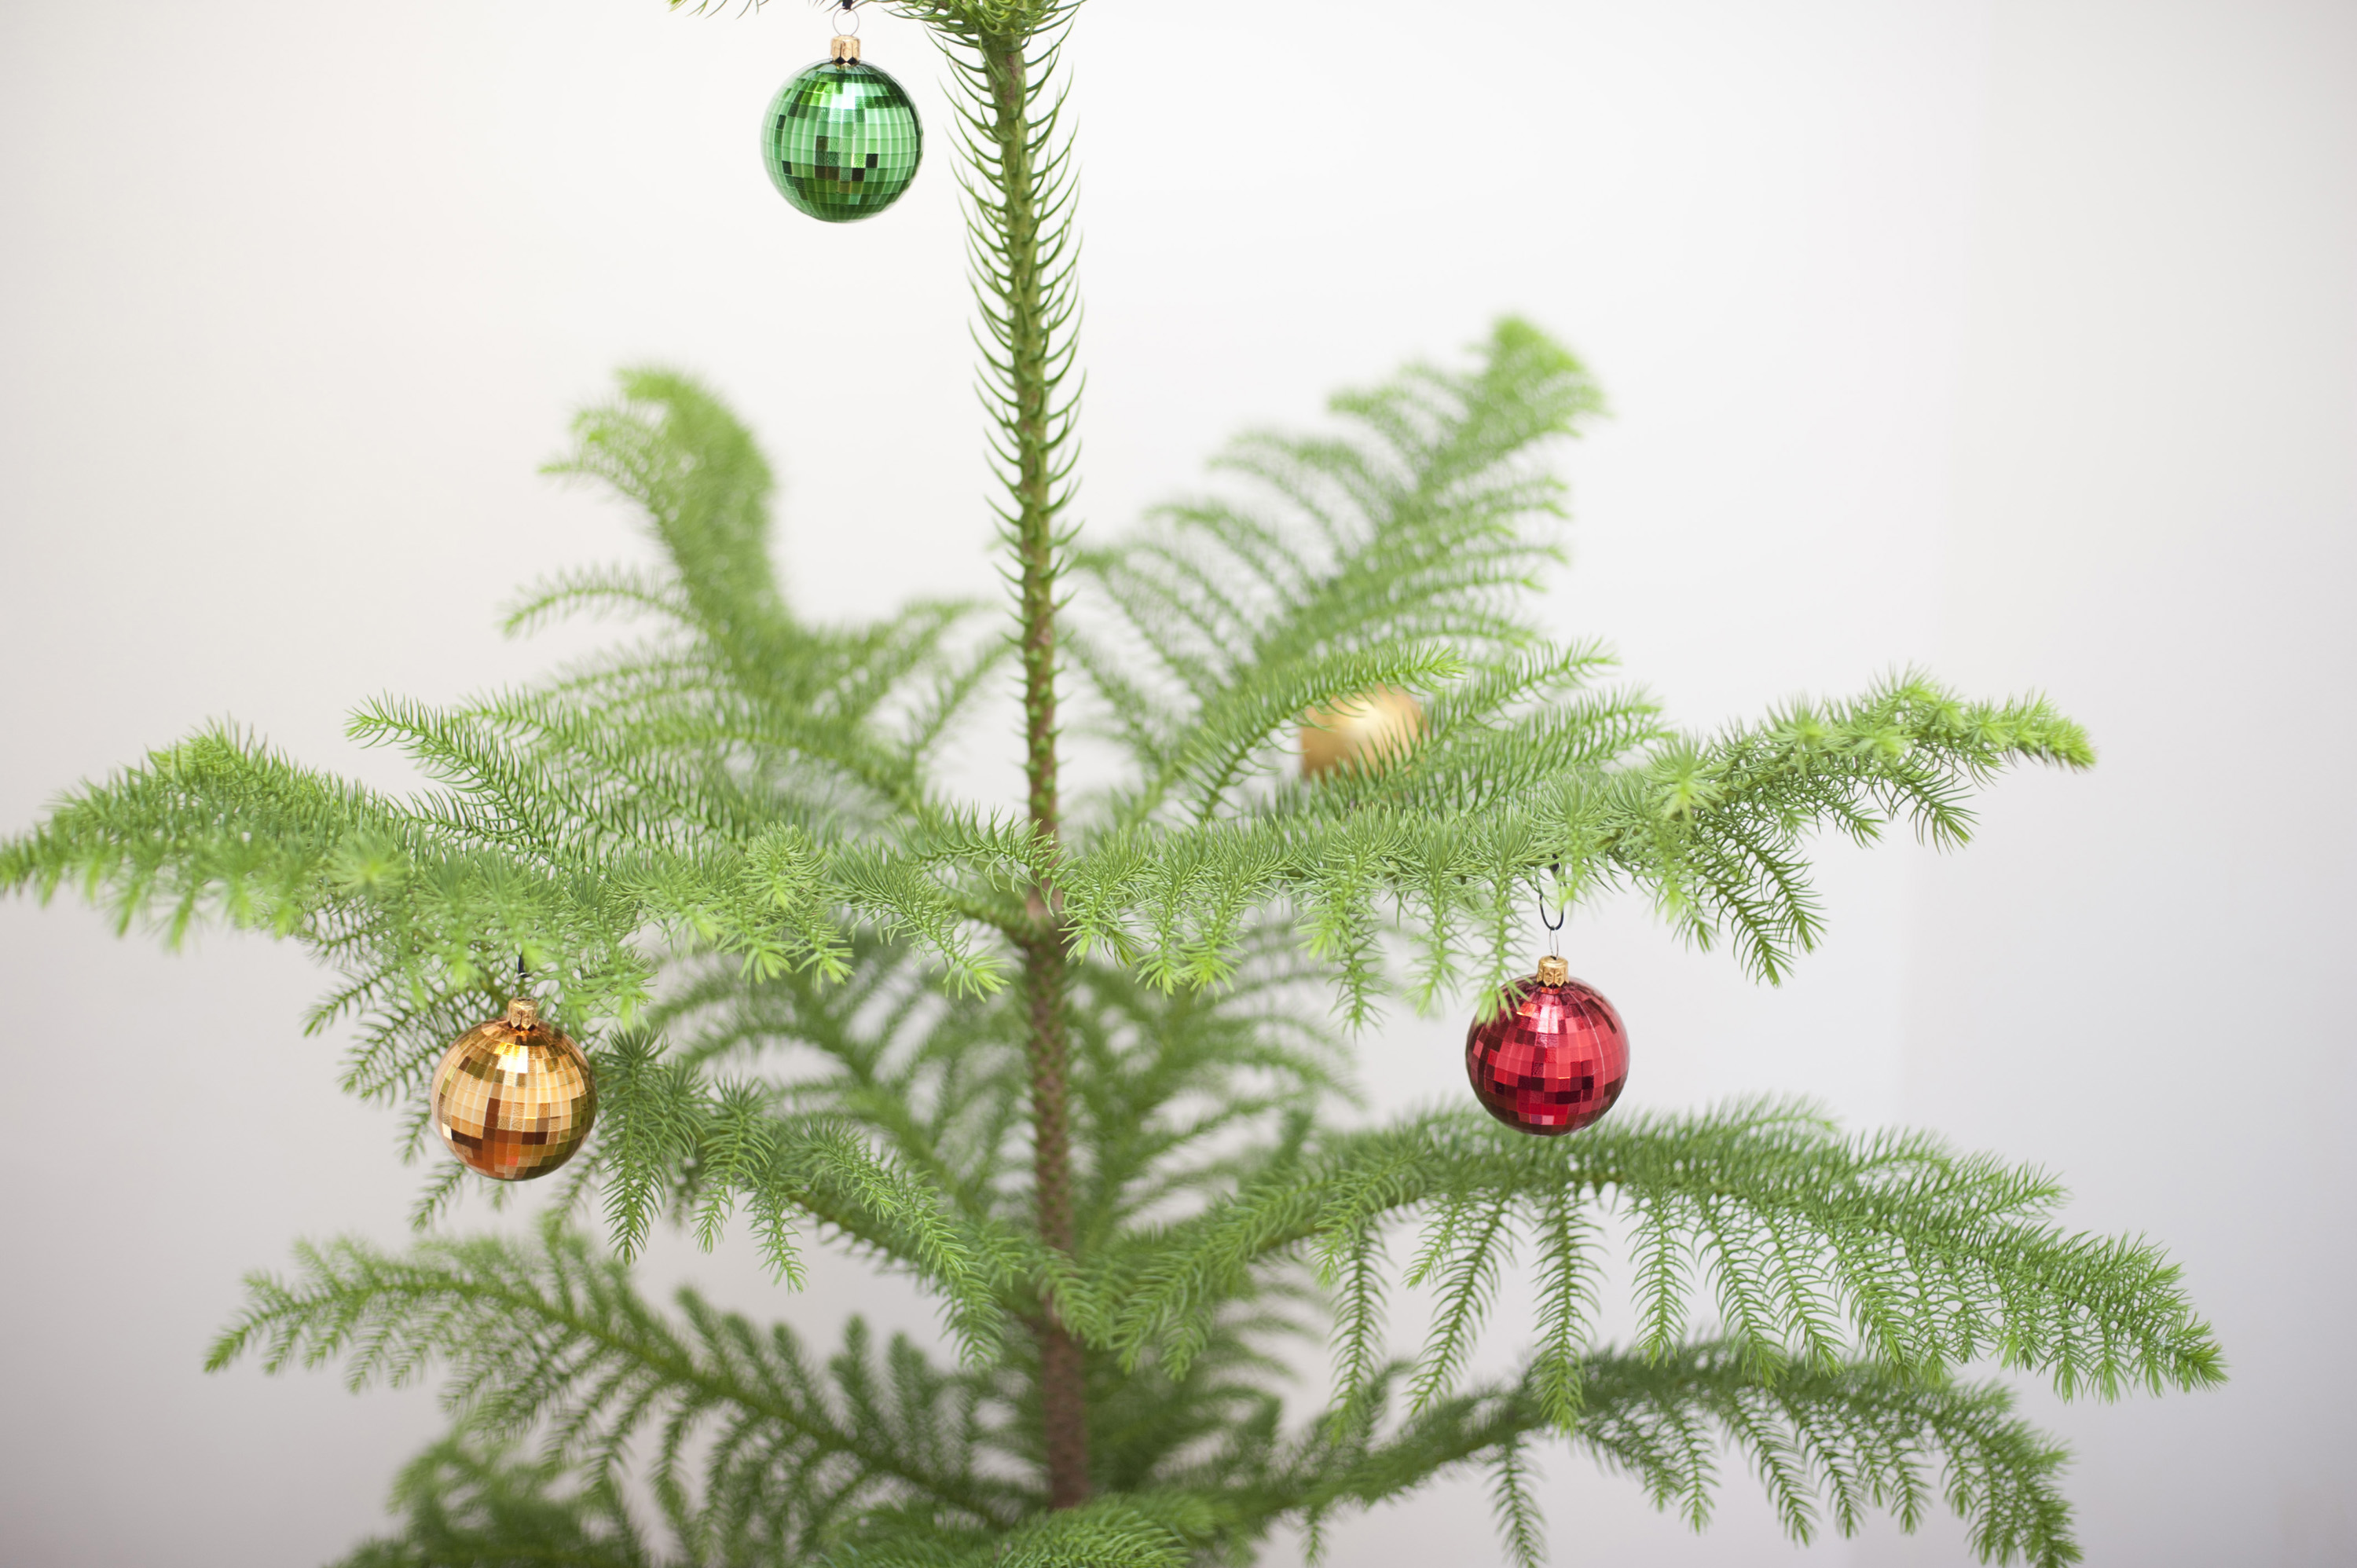 Commercial Christmas Decorations Uk